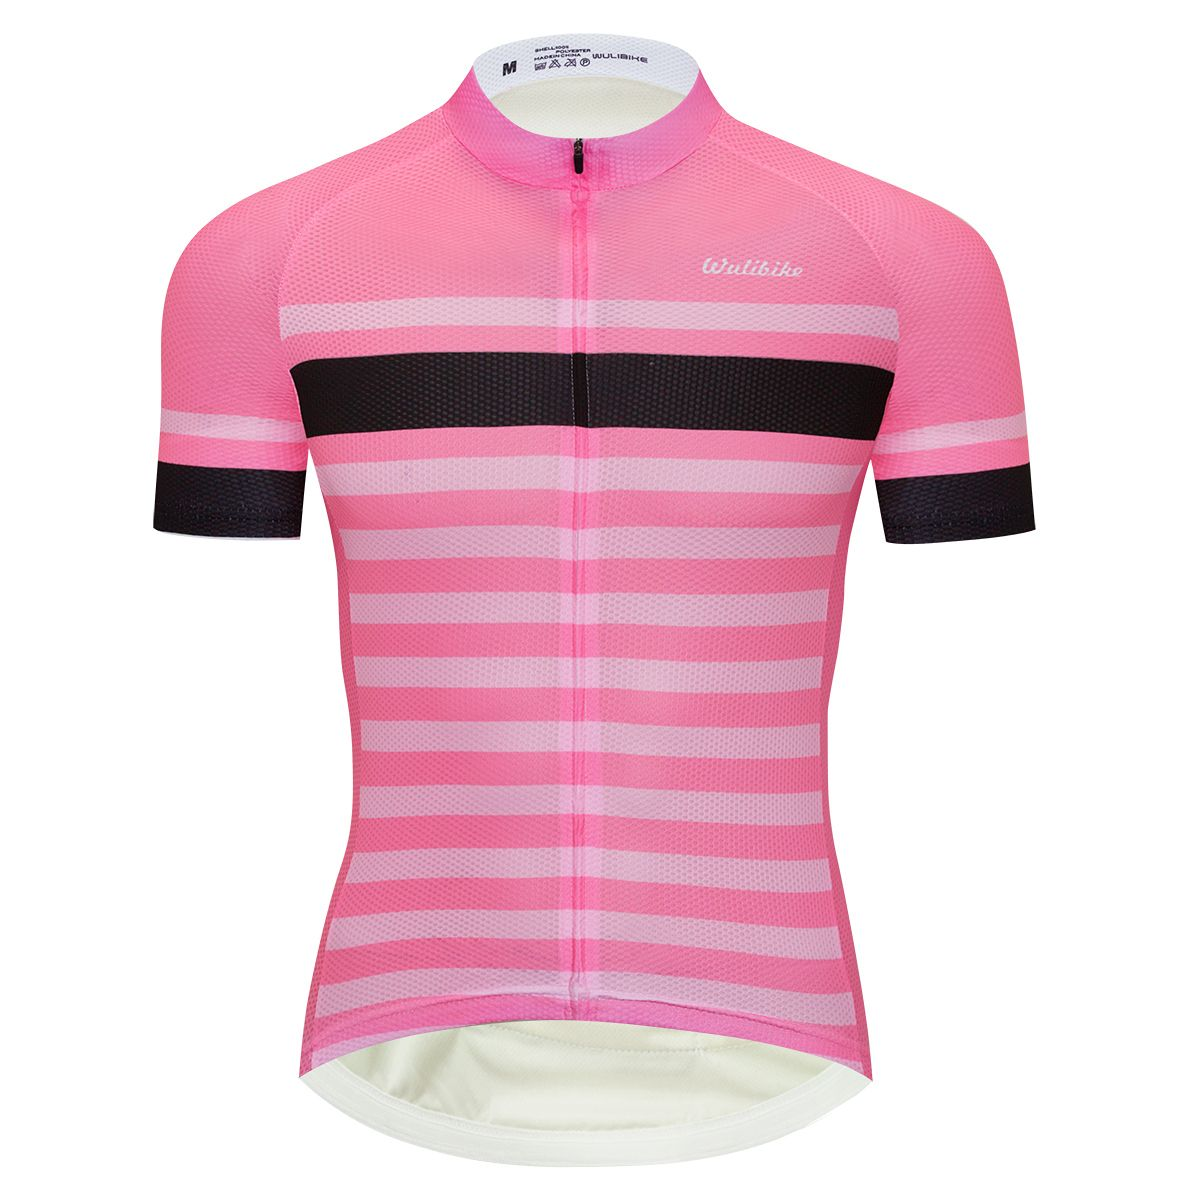 Wulibike Simple Pink Cycling Jersey For Men Roadcycling